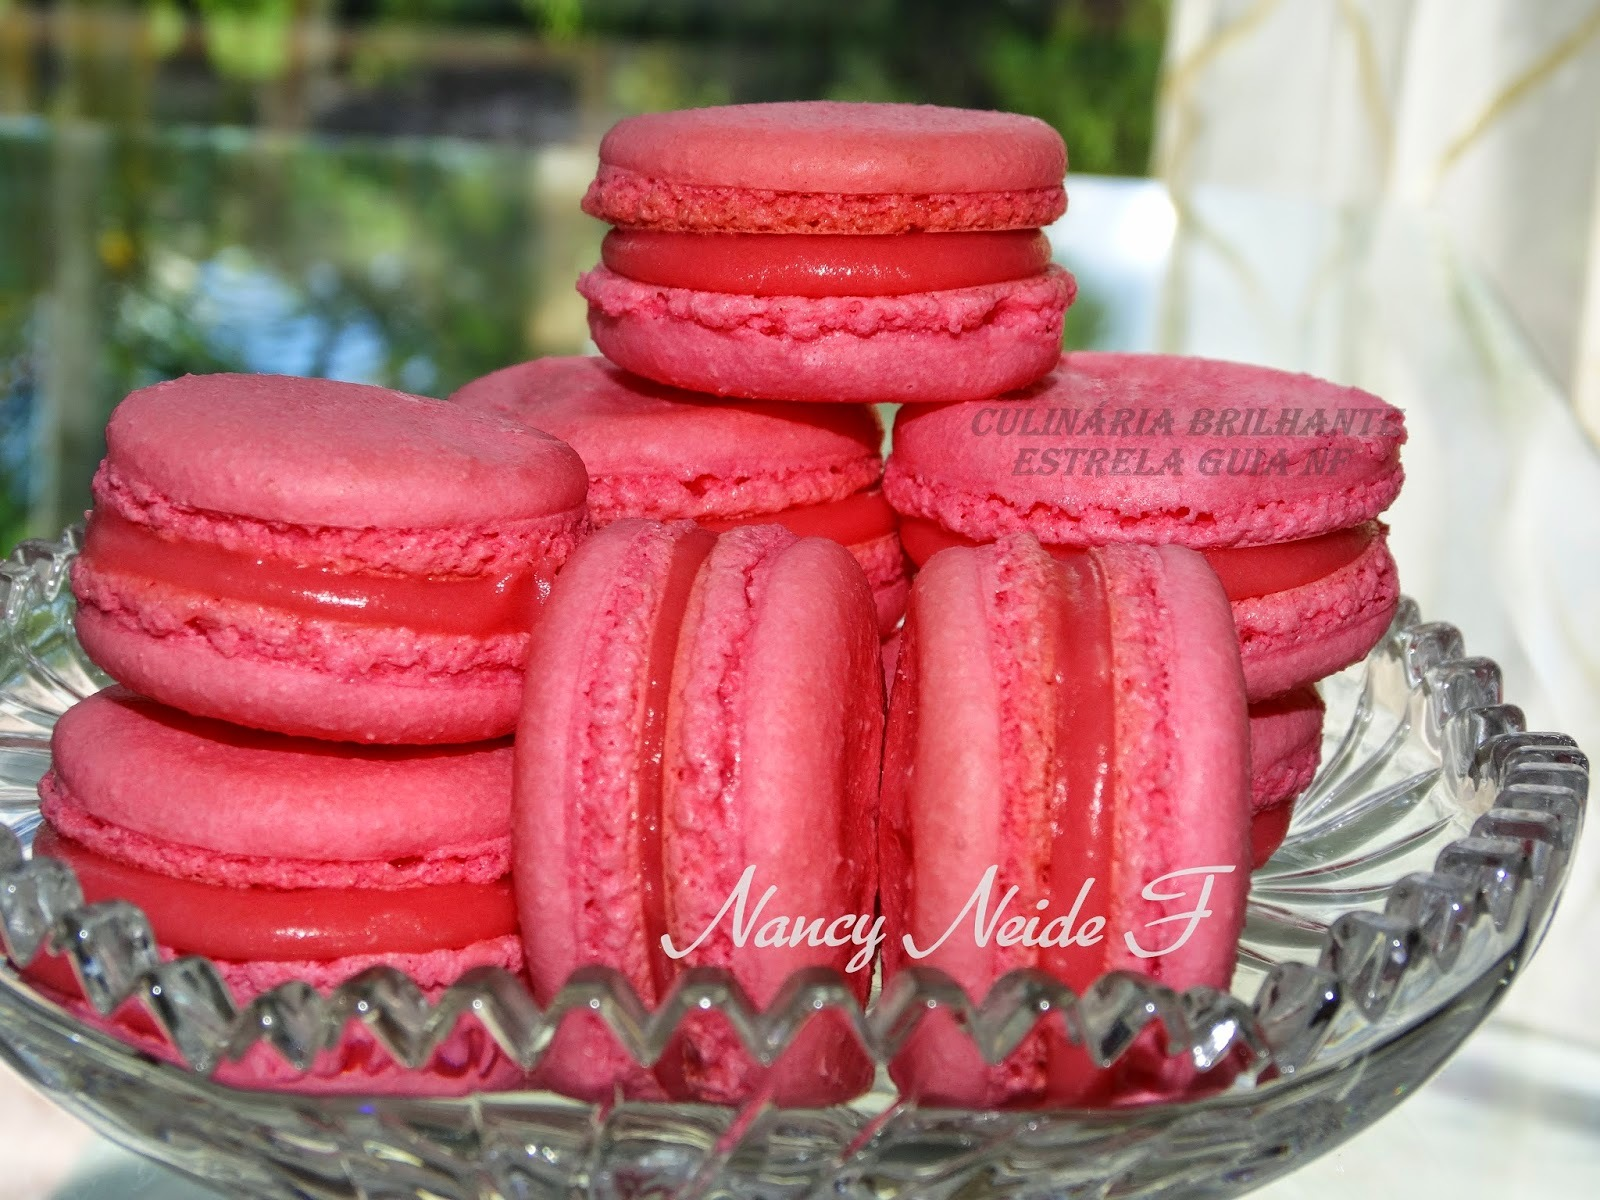 Macarons de Nancy